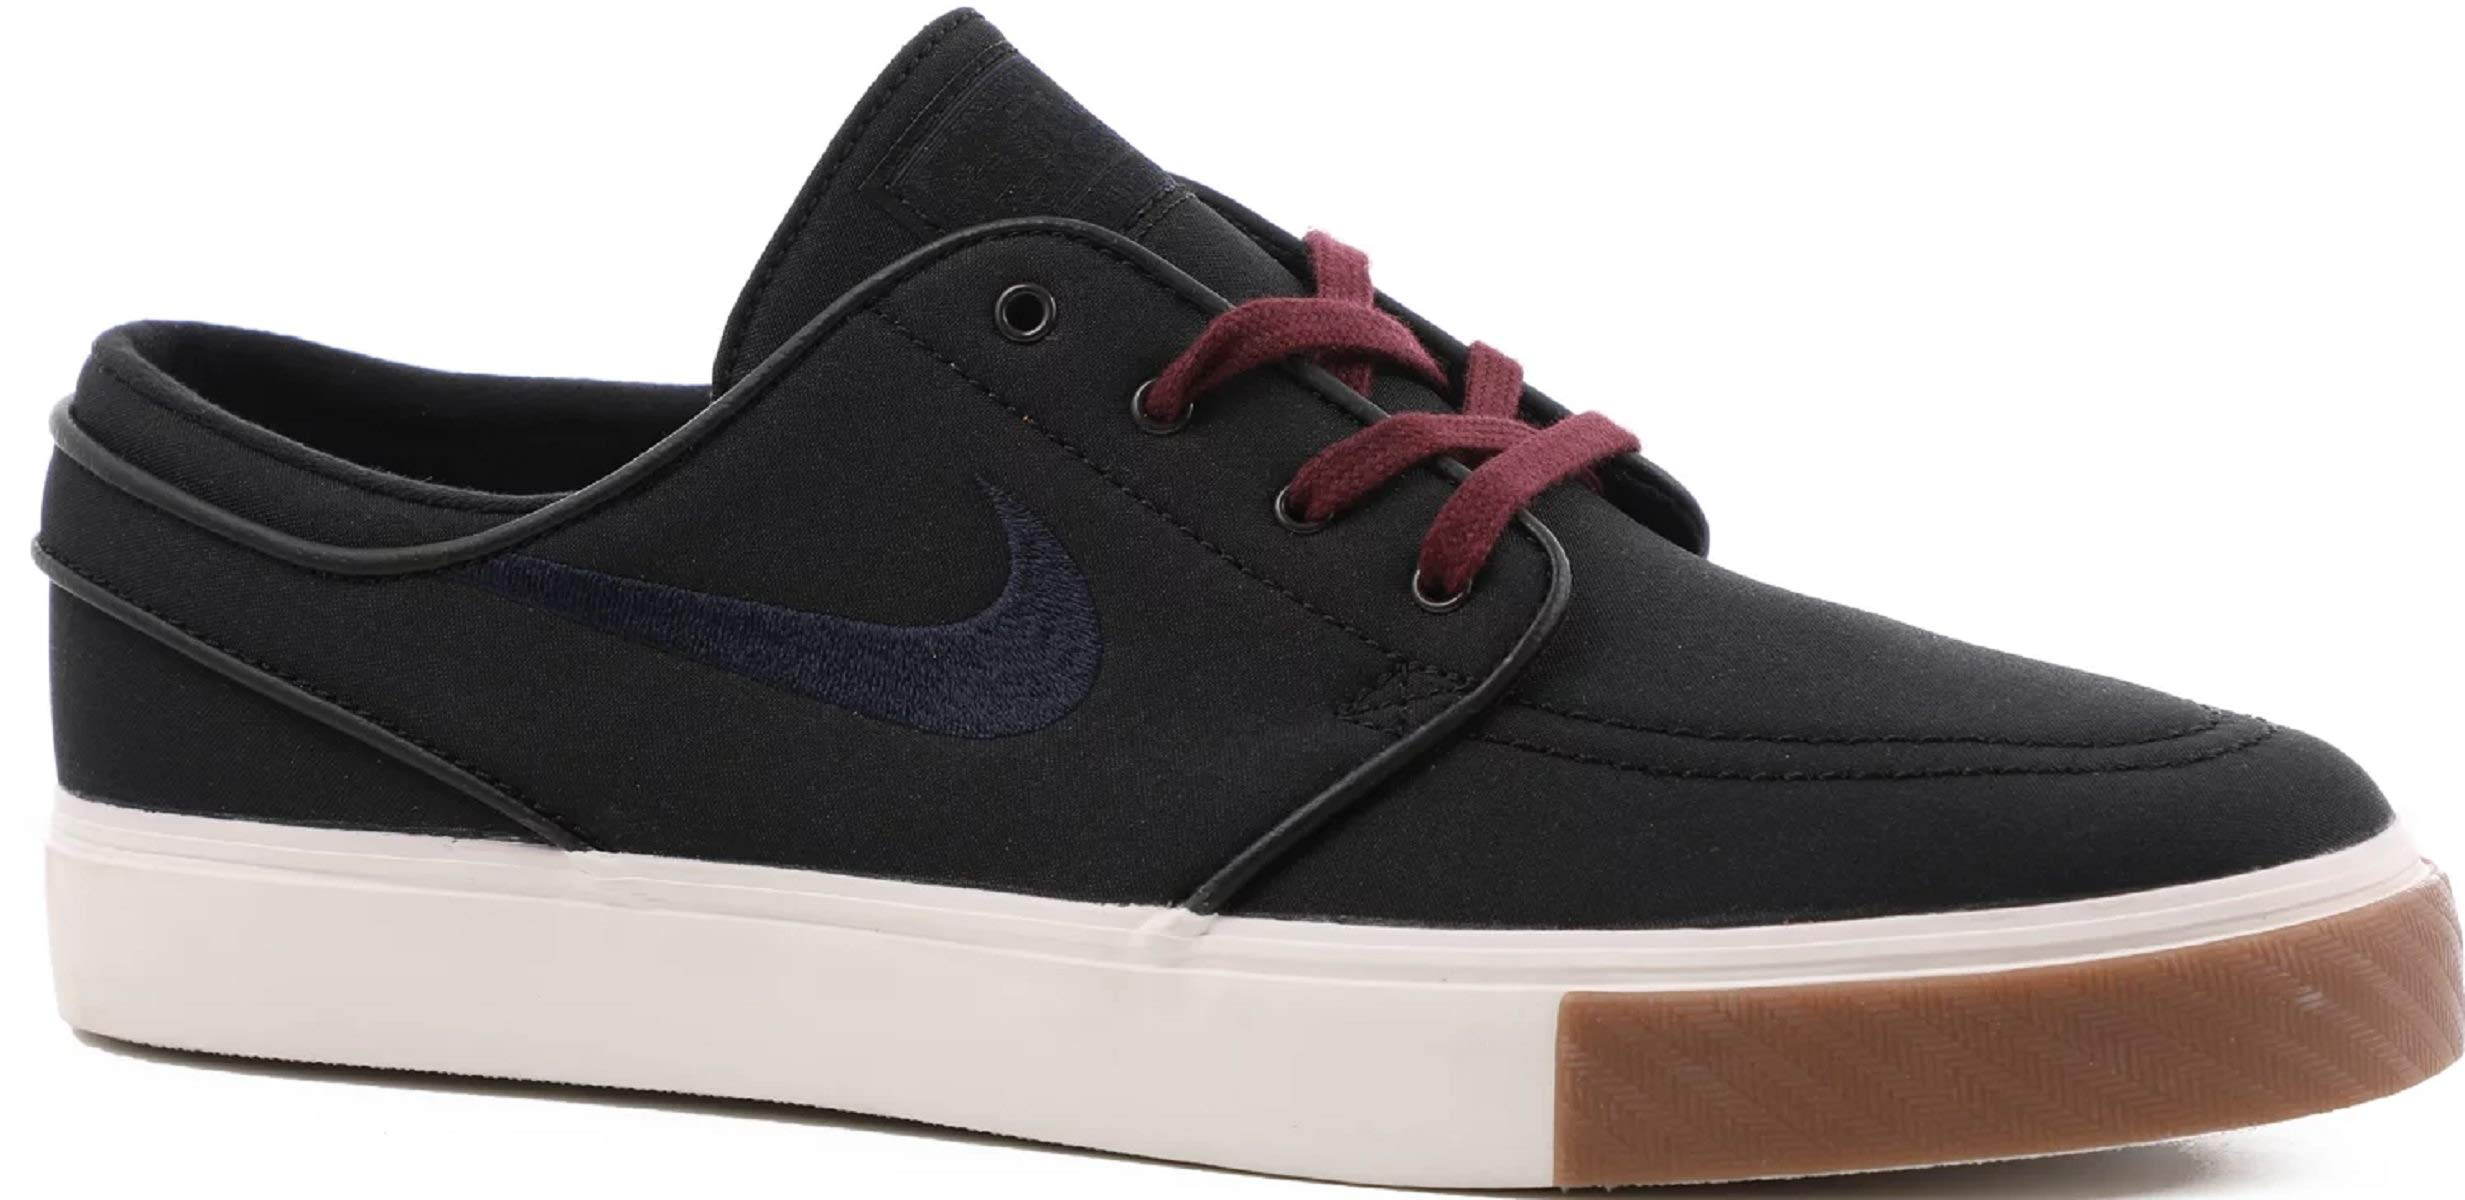 new styles 90c87 9a486 Nike Zoom Stefan Janoski CNVS Mens Fashion-Sneakers 615957-024 7.5 - Black Obsidian-Burgundy  Crush